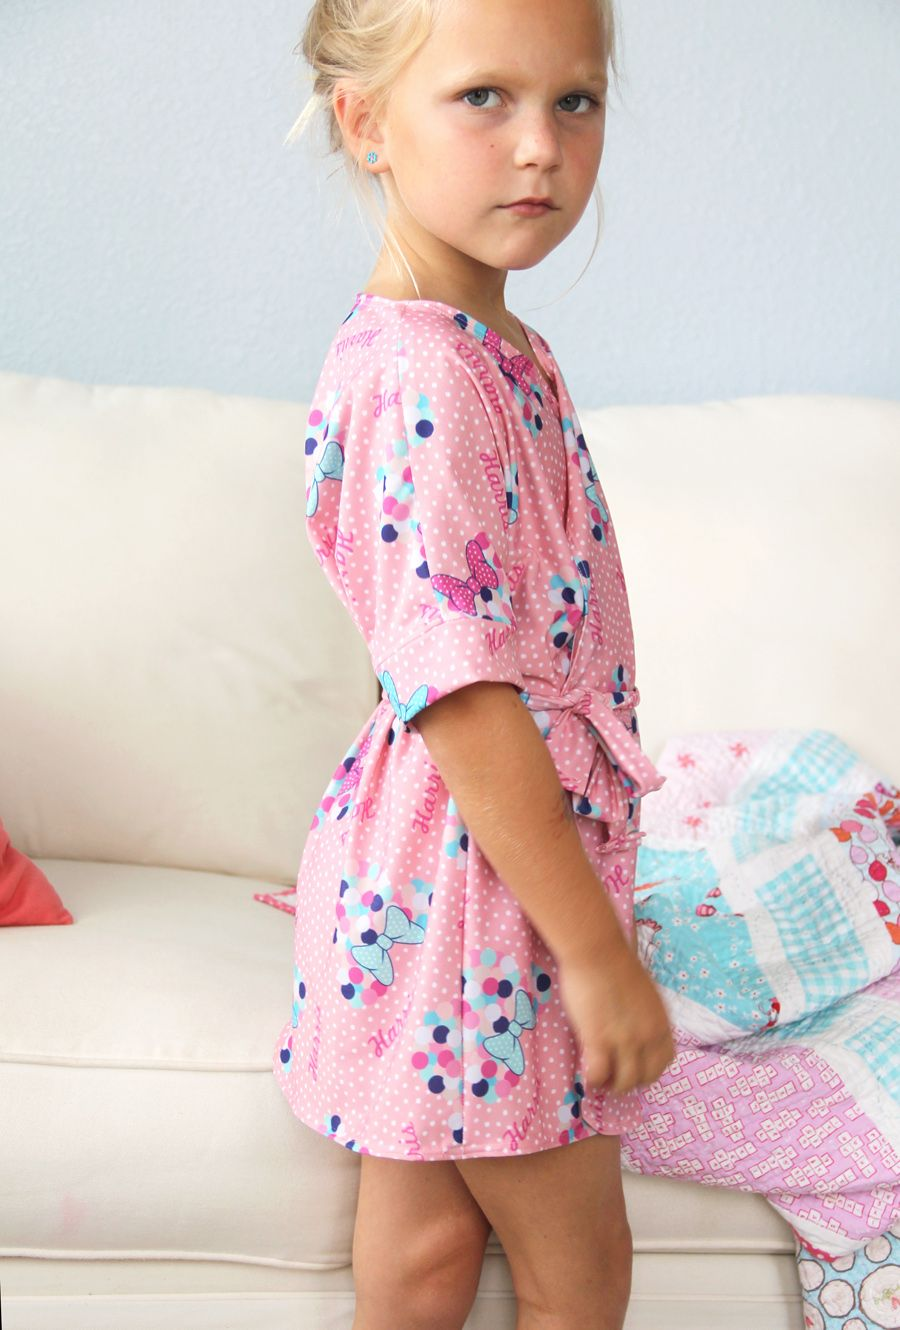 Kids bathrobe sewing patterns pyjamas and robe free kids robe sewing pattern perfect bathrobe sewing pattern or pajama robe sewing pattern jeuxipadfo Images